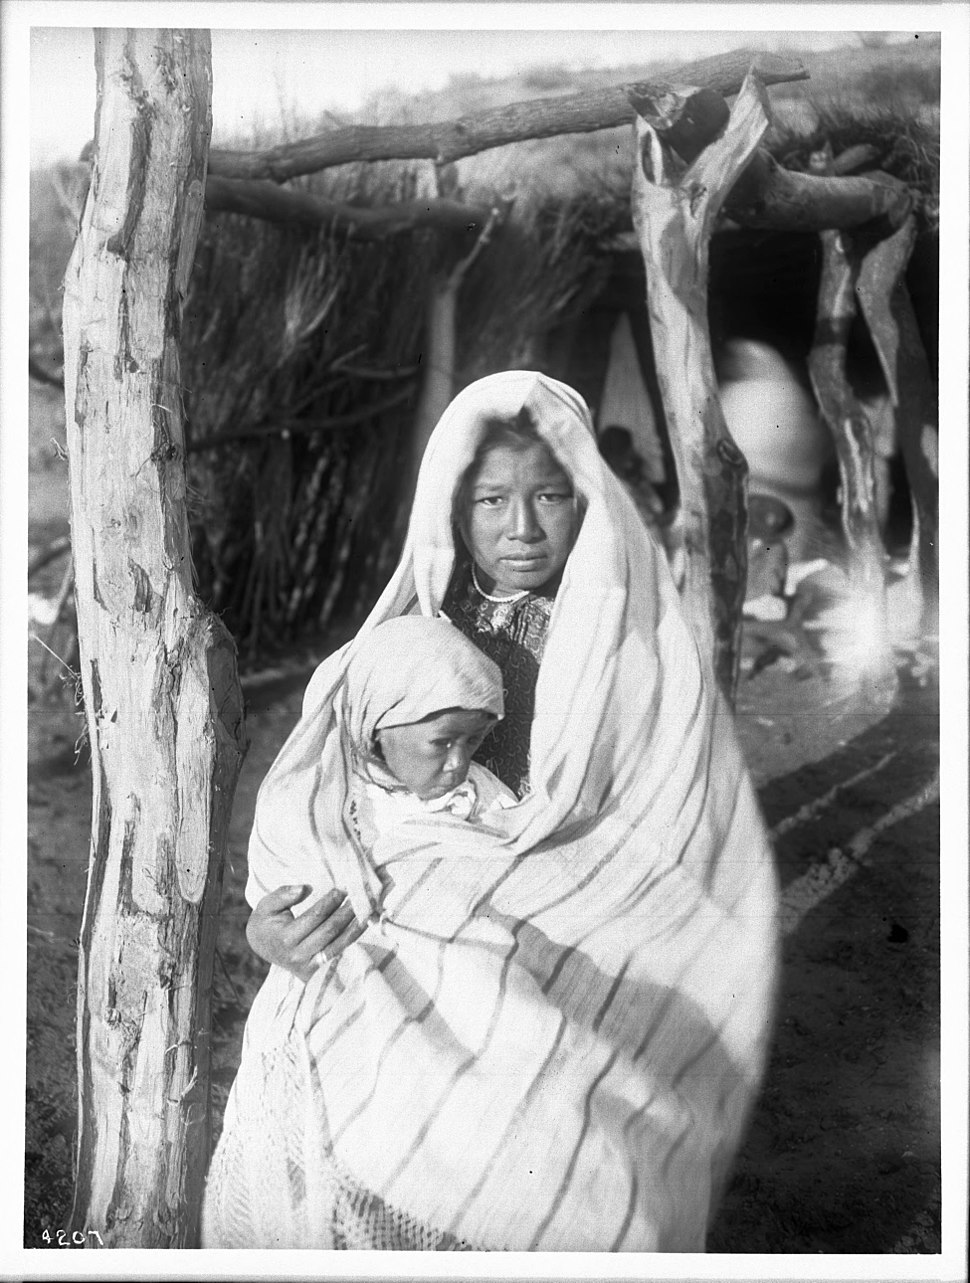 A Yaqui Indian mother holding a baby, Arizona, ca.1910 (CHS-4207)